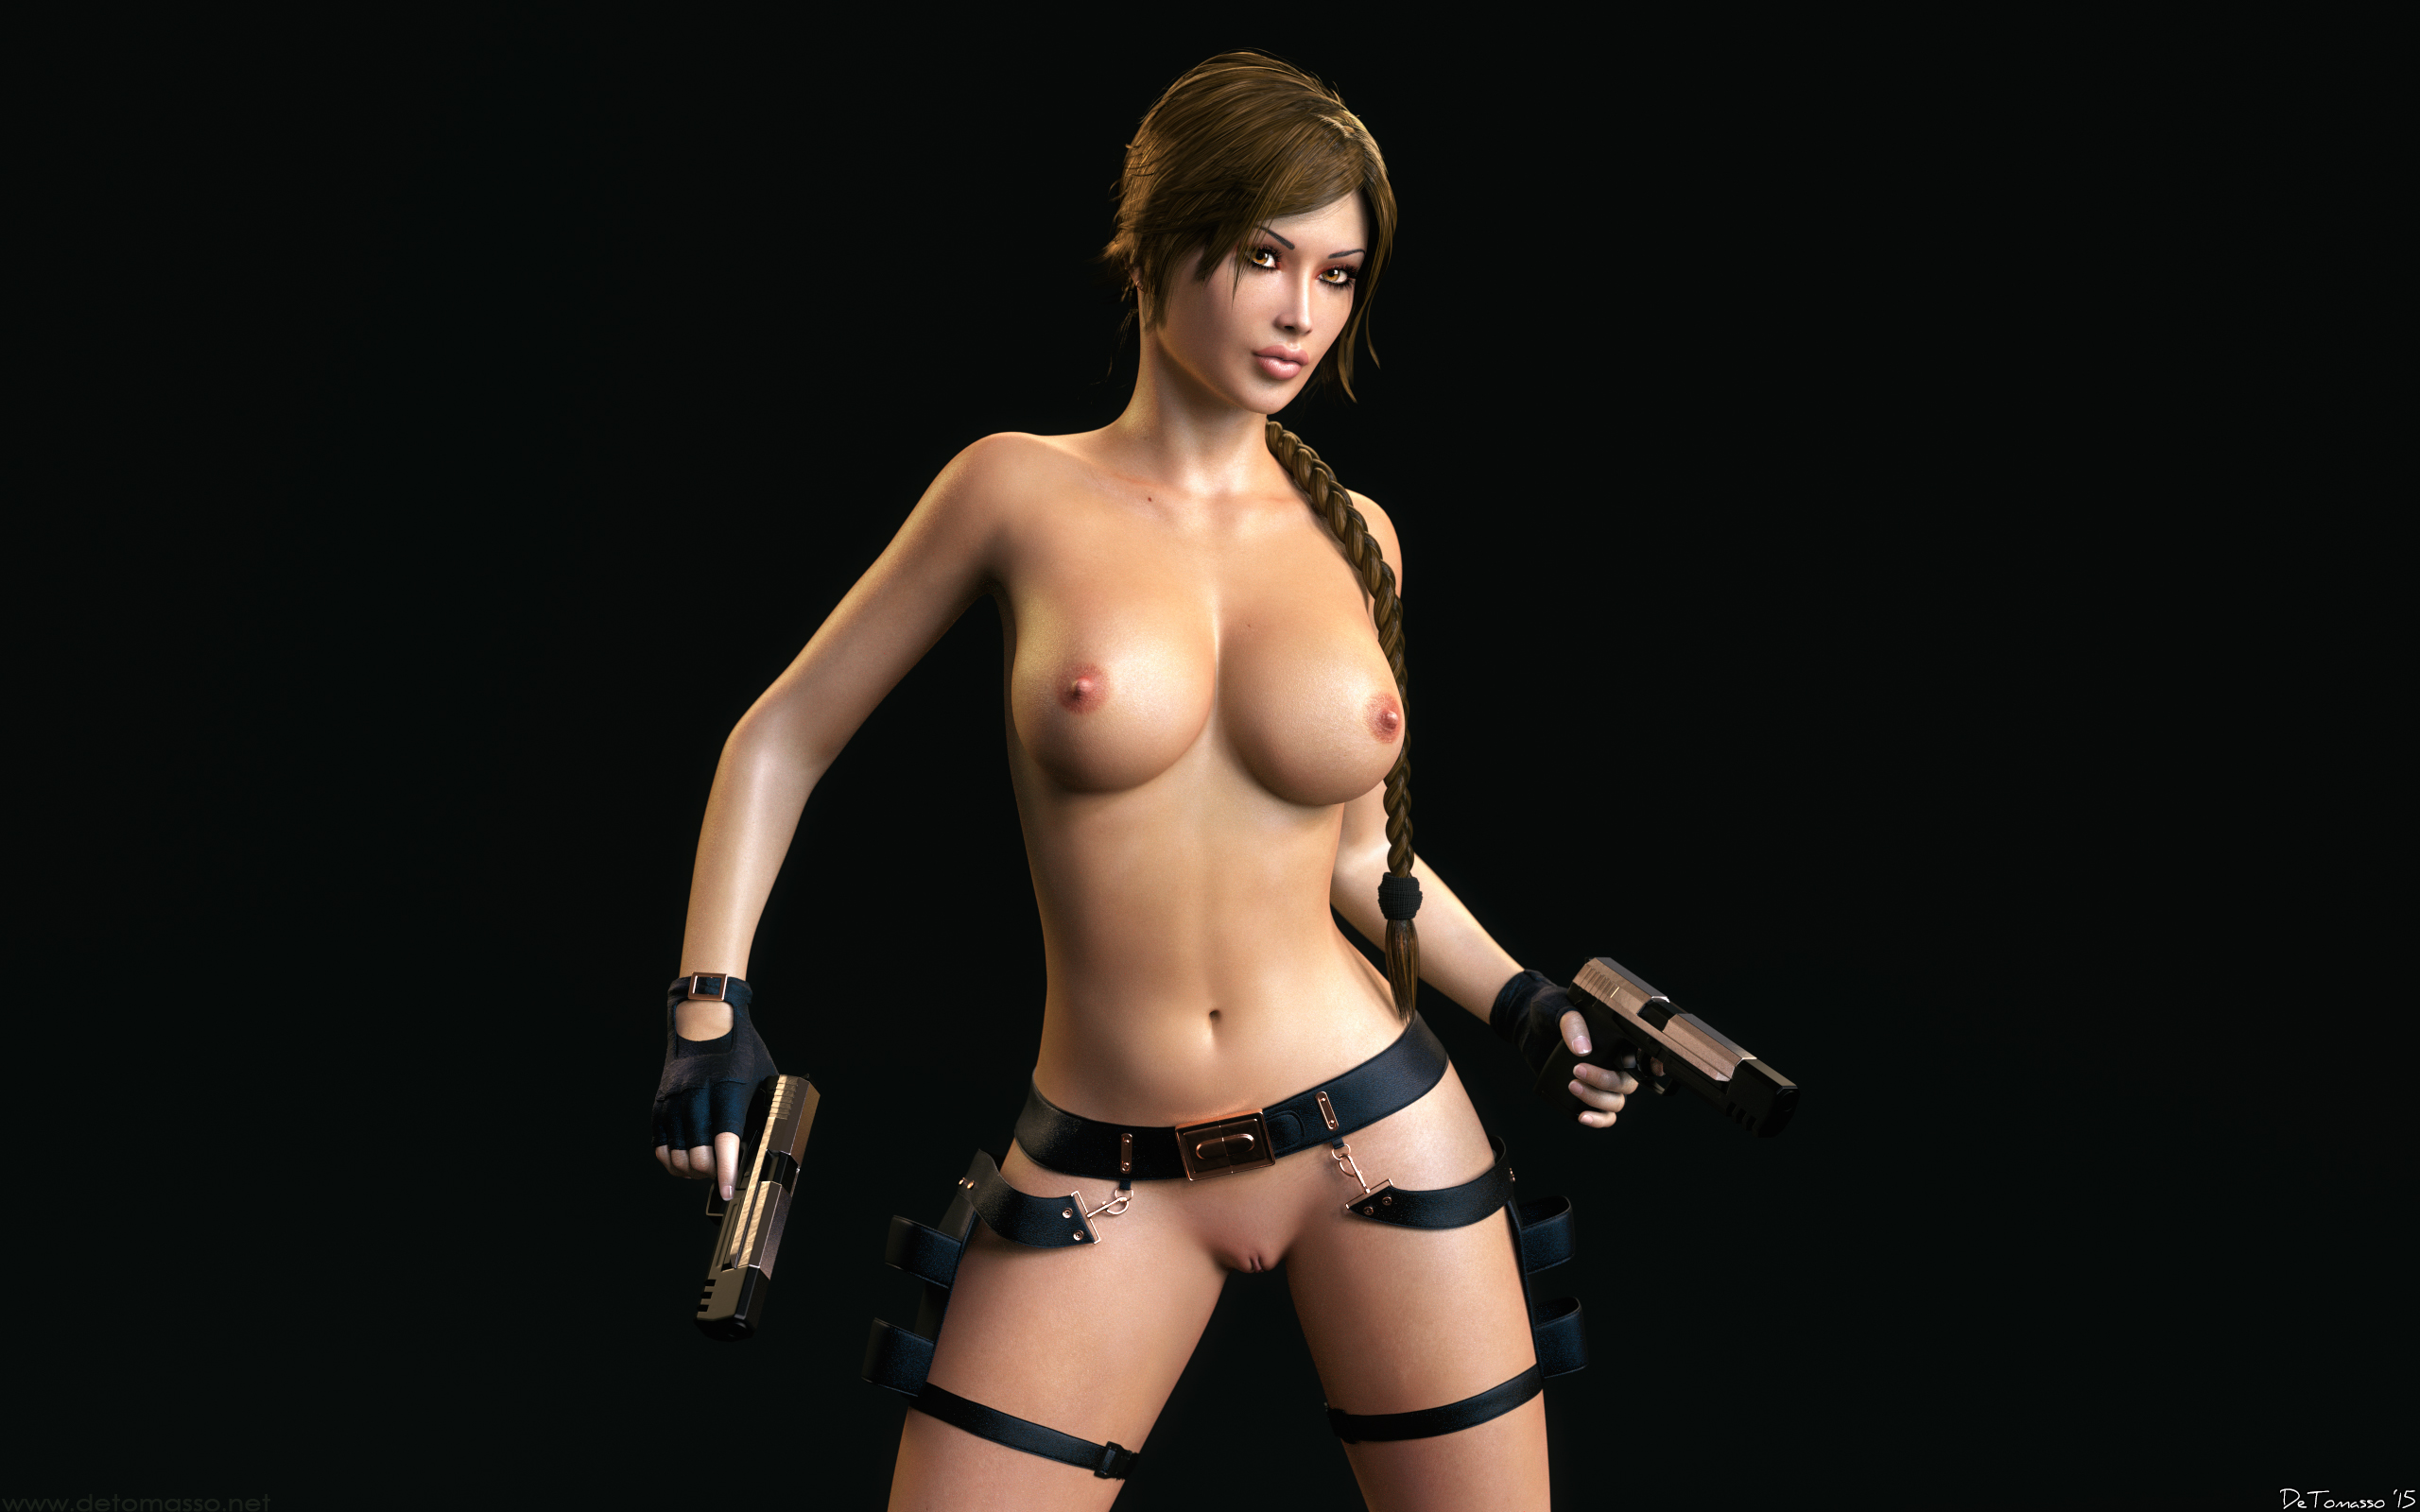 Lara Croft Nude In Bus 66